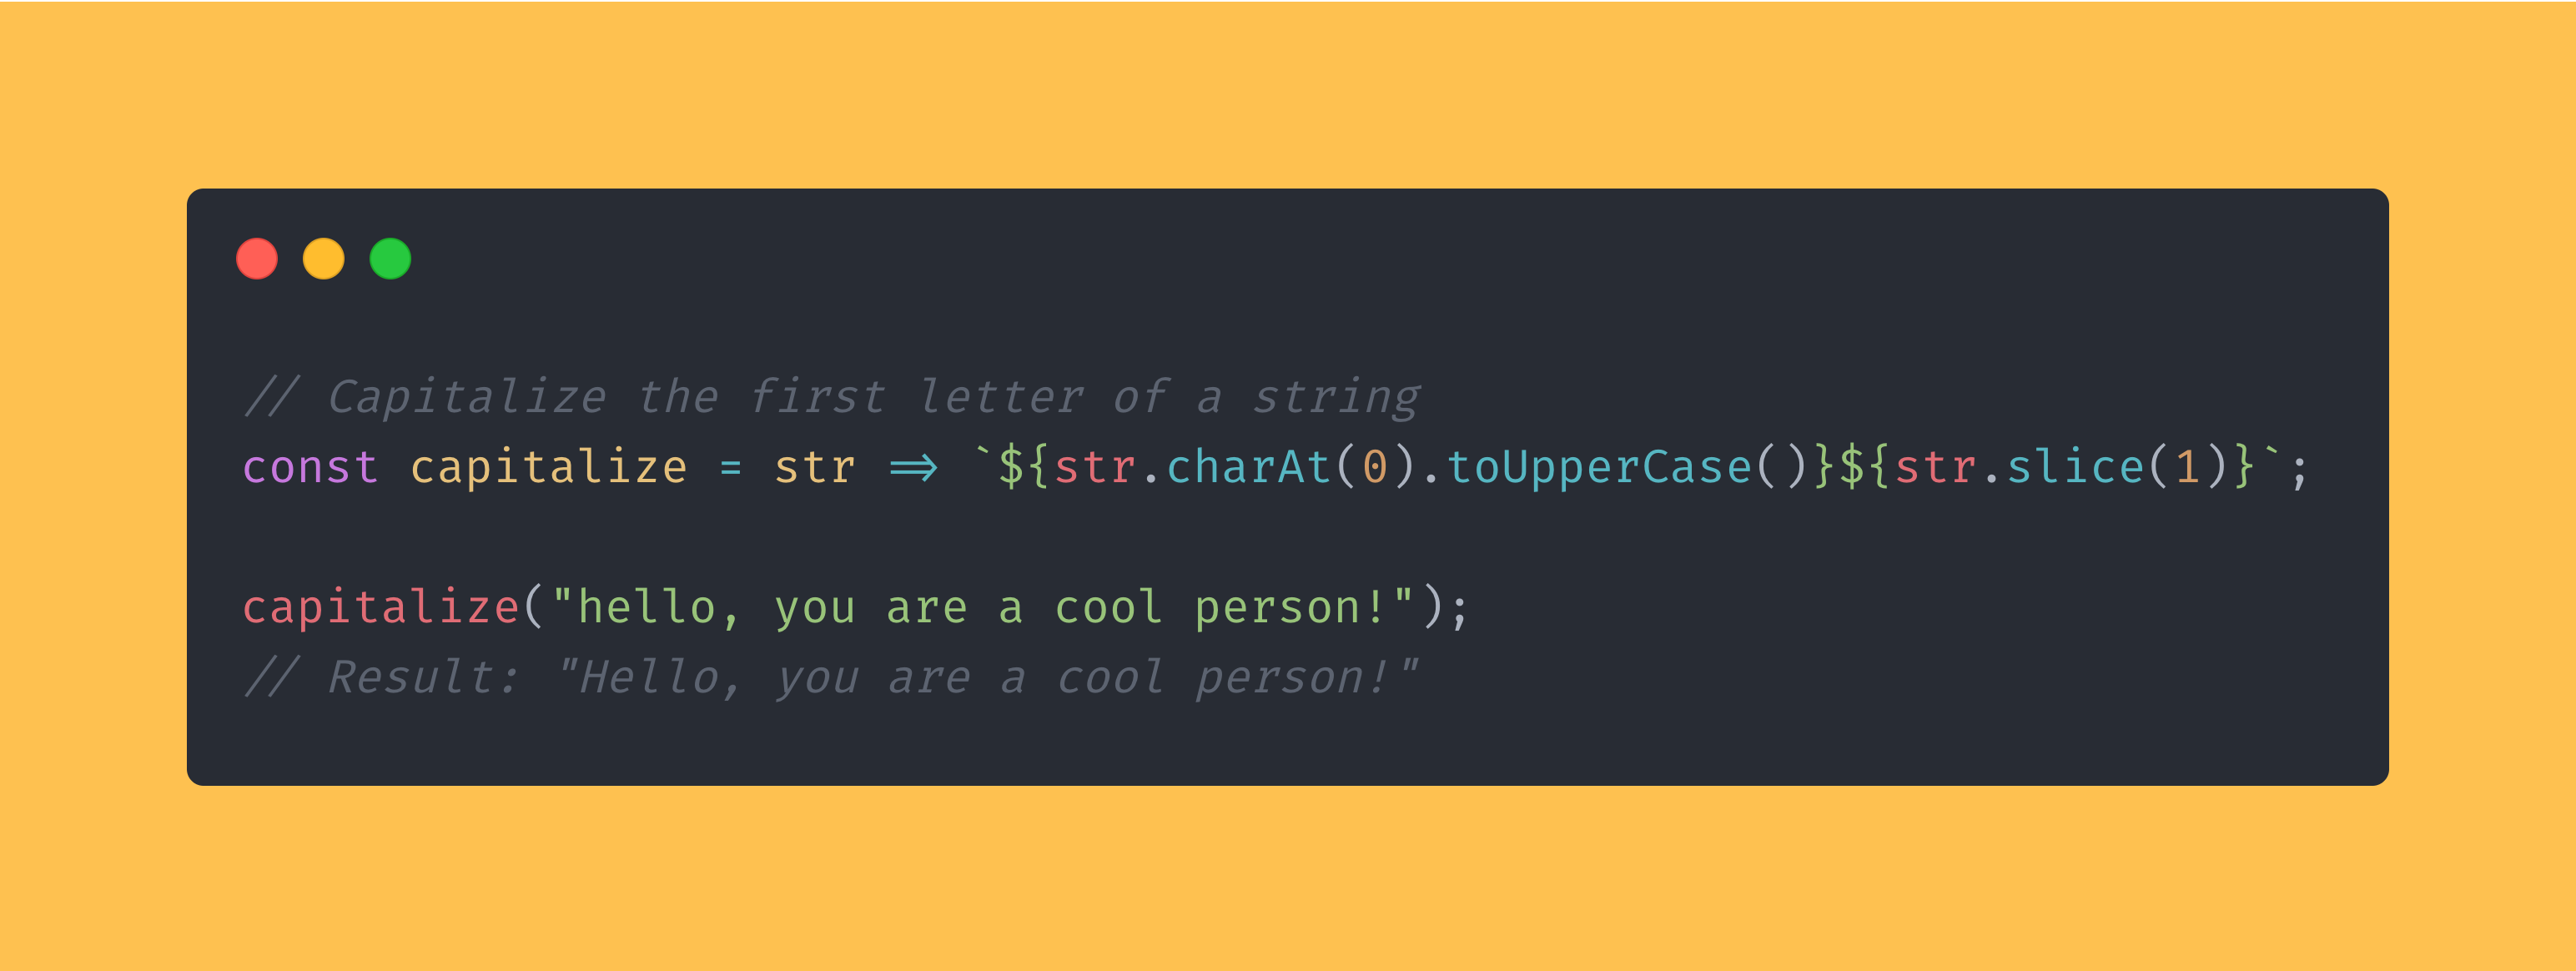 JavaScript function that capitalizes the first letter of a sentence.